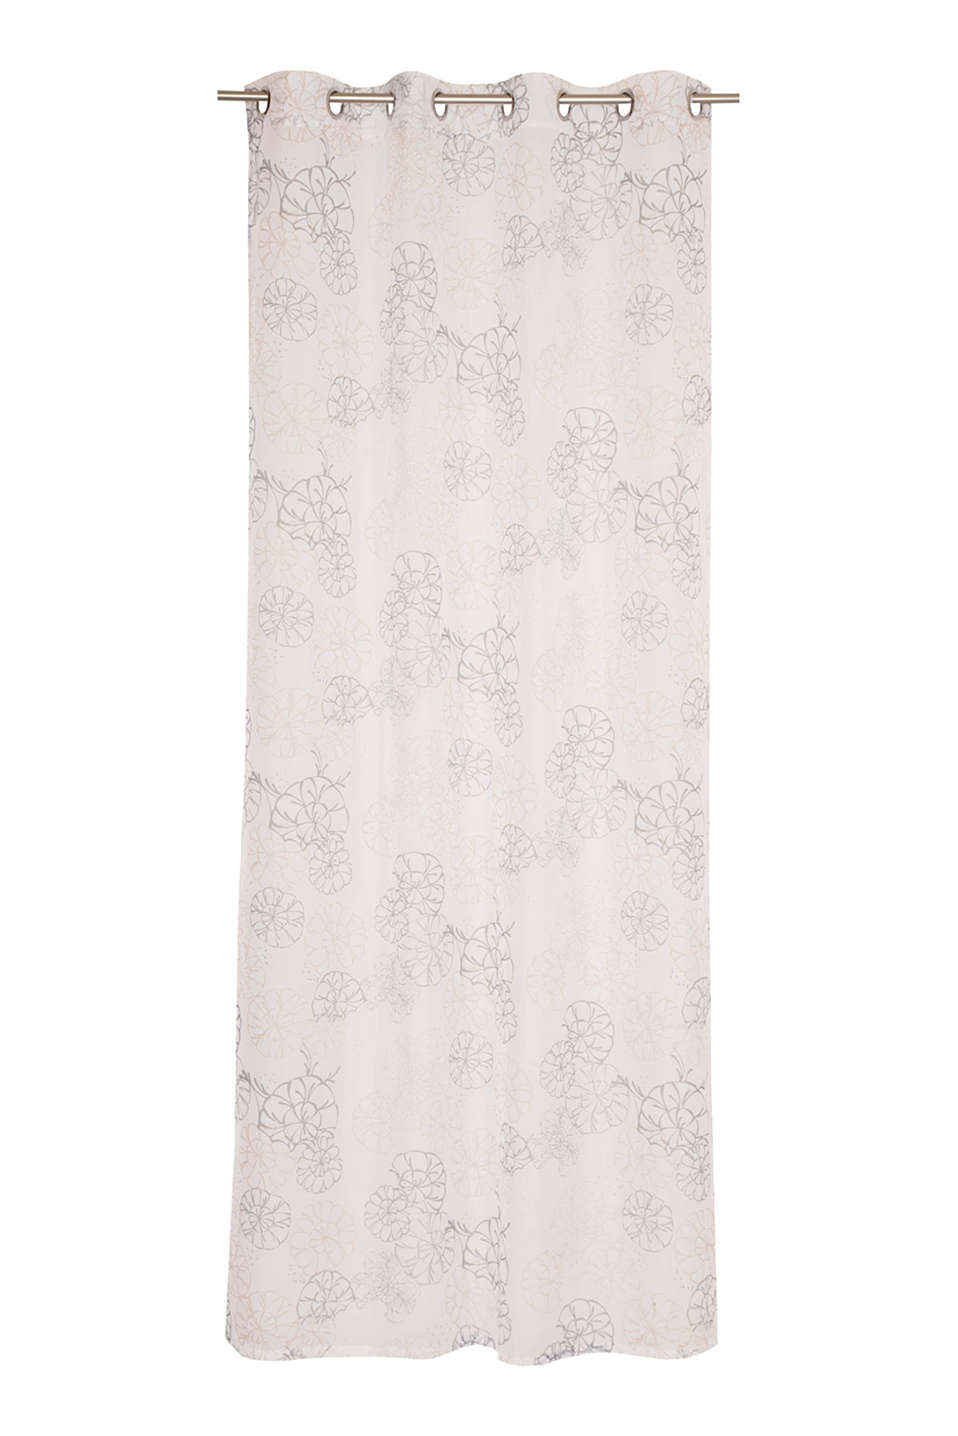 Esprit - Voile eyelet curtain with a digital print